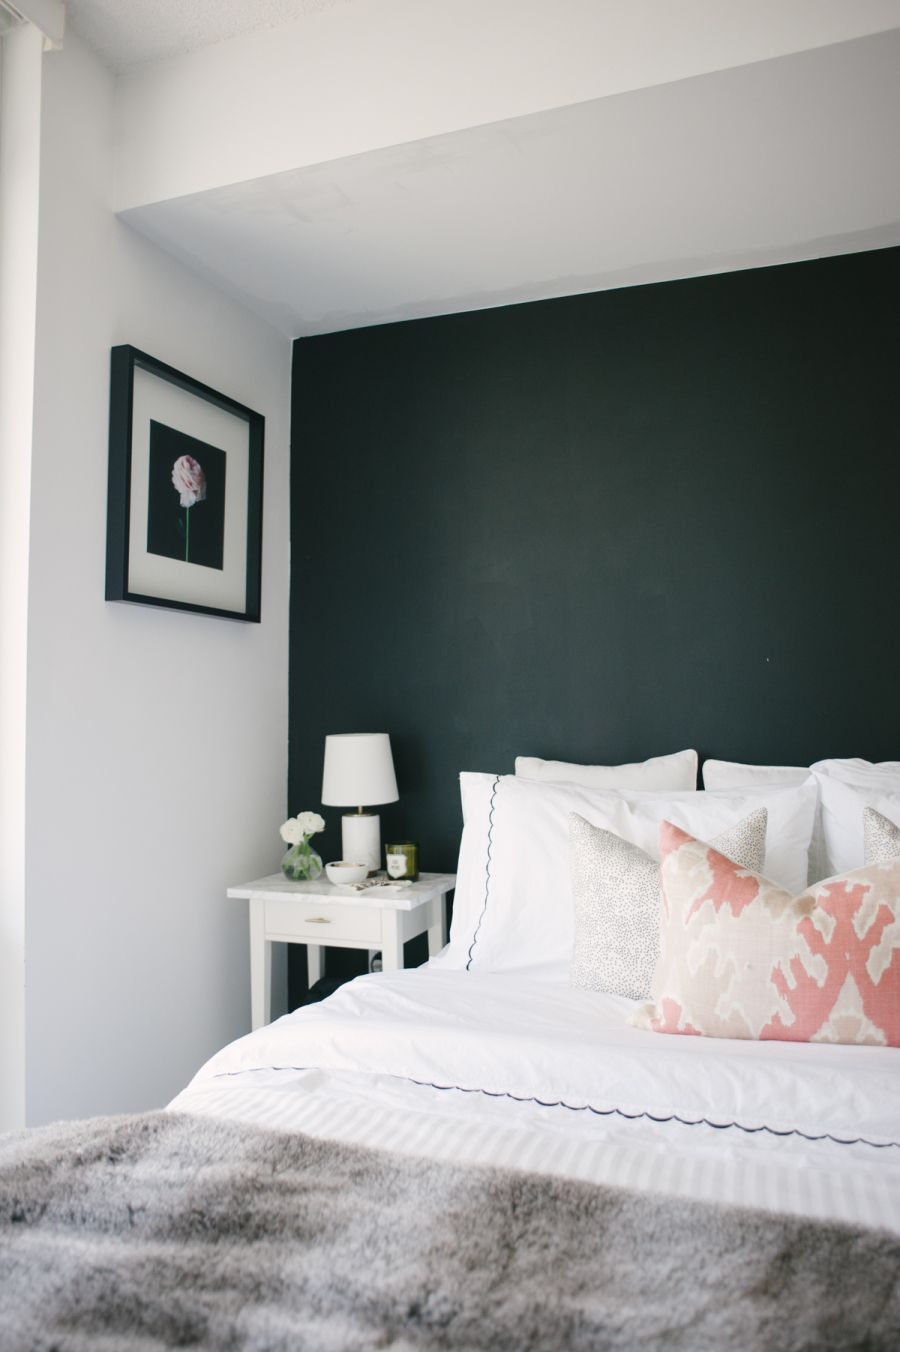 Paint a bold accent wall: http://www.stylemepretty.com/living/2016/04/01/blank-walls-20-things-you-can-do-to-jazz-them-up/